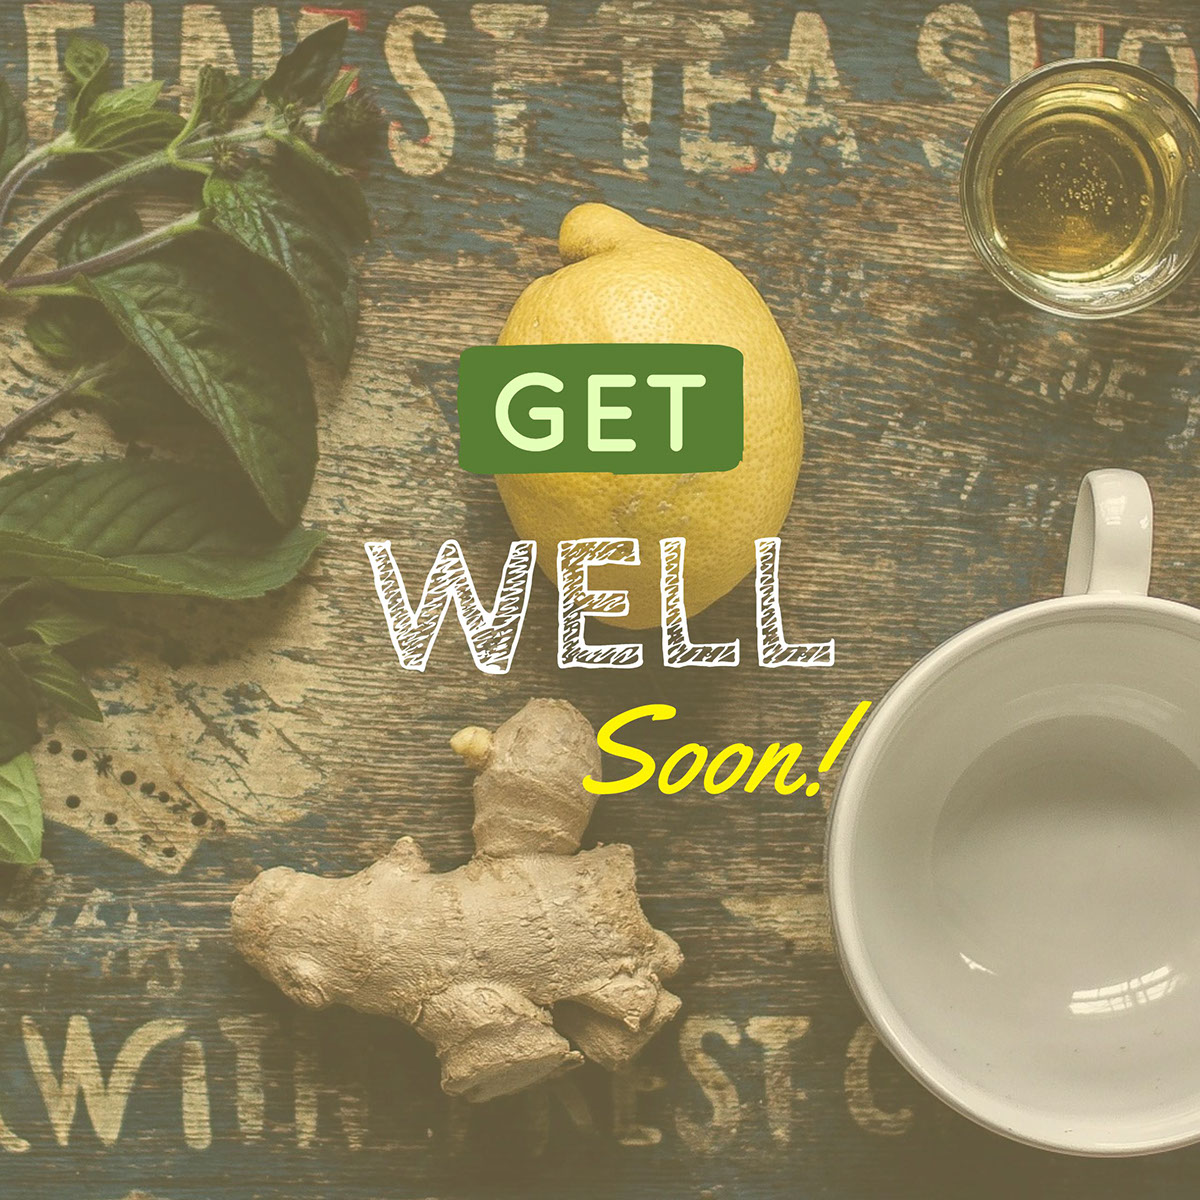 Well Well Soon! Get